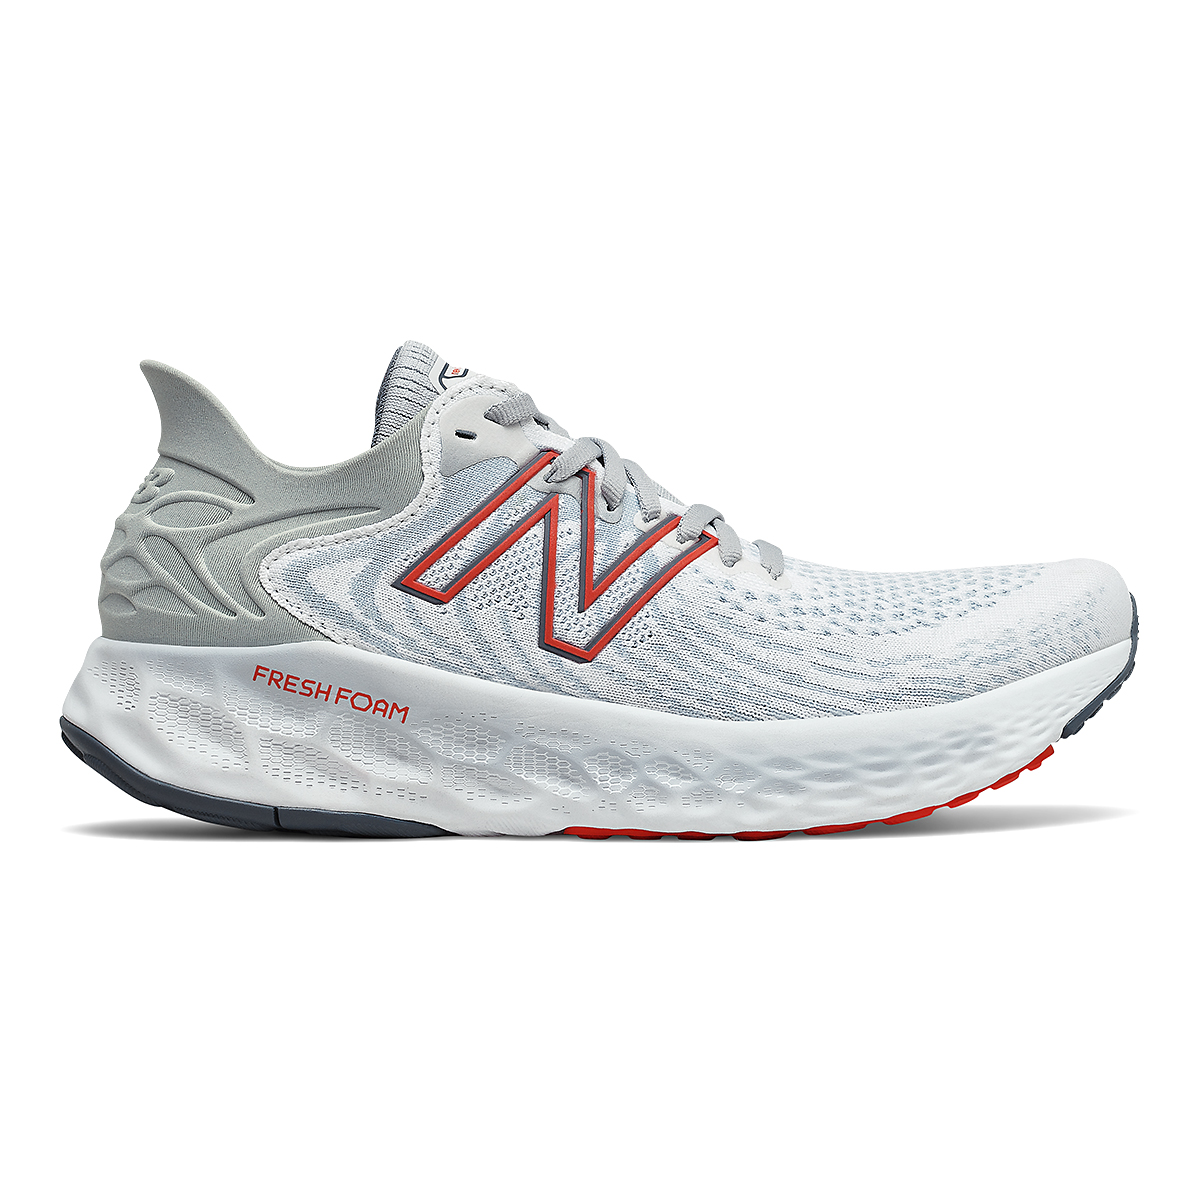 Men's New Balance 1080v11 Running Shoe - Color: White/Ghost Pepper - Size: 7 - Width: Wide, White/Ghost Pepper, large, image 1